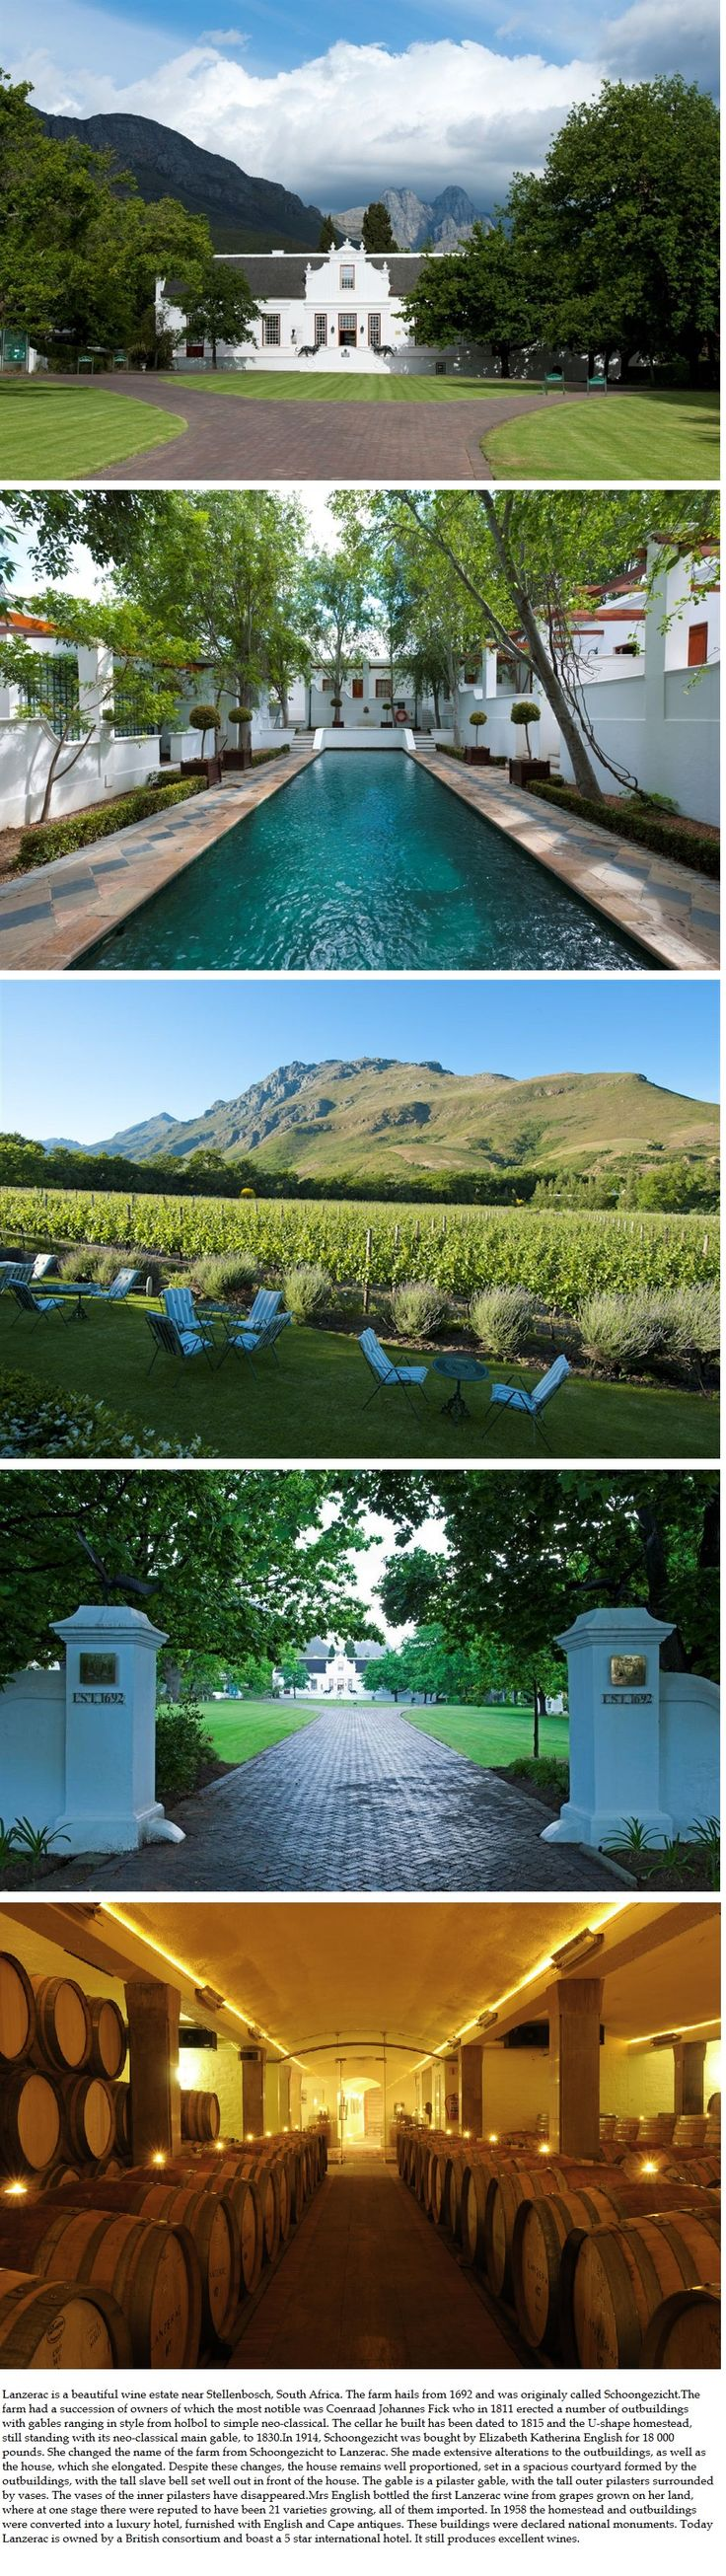 Lanzerac wine estate and hotel, South Africa.